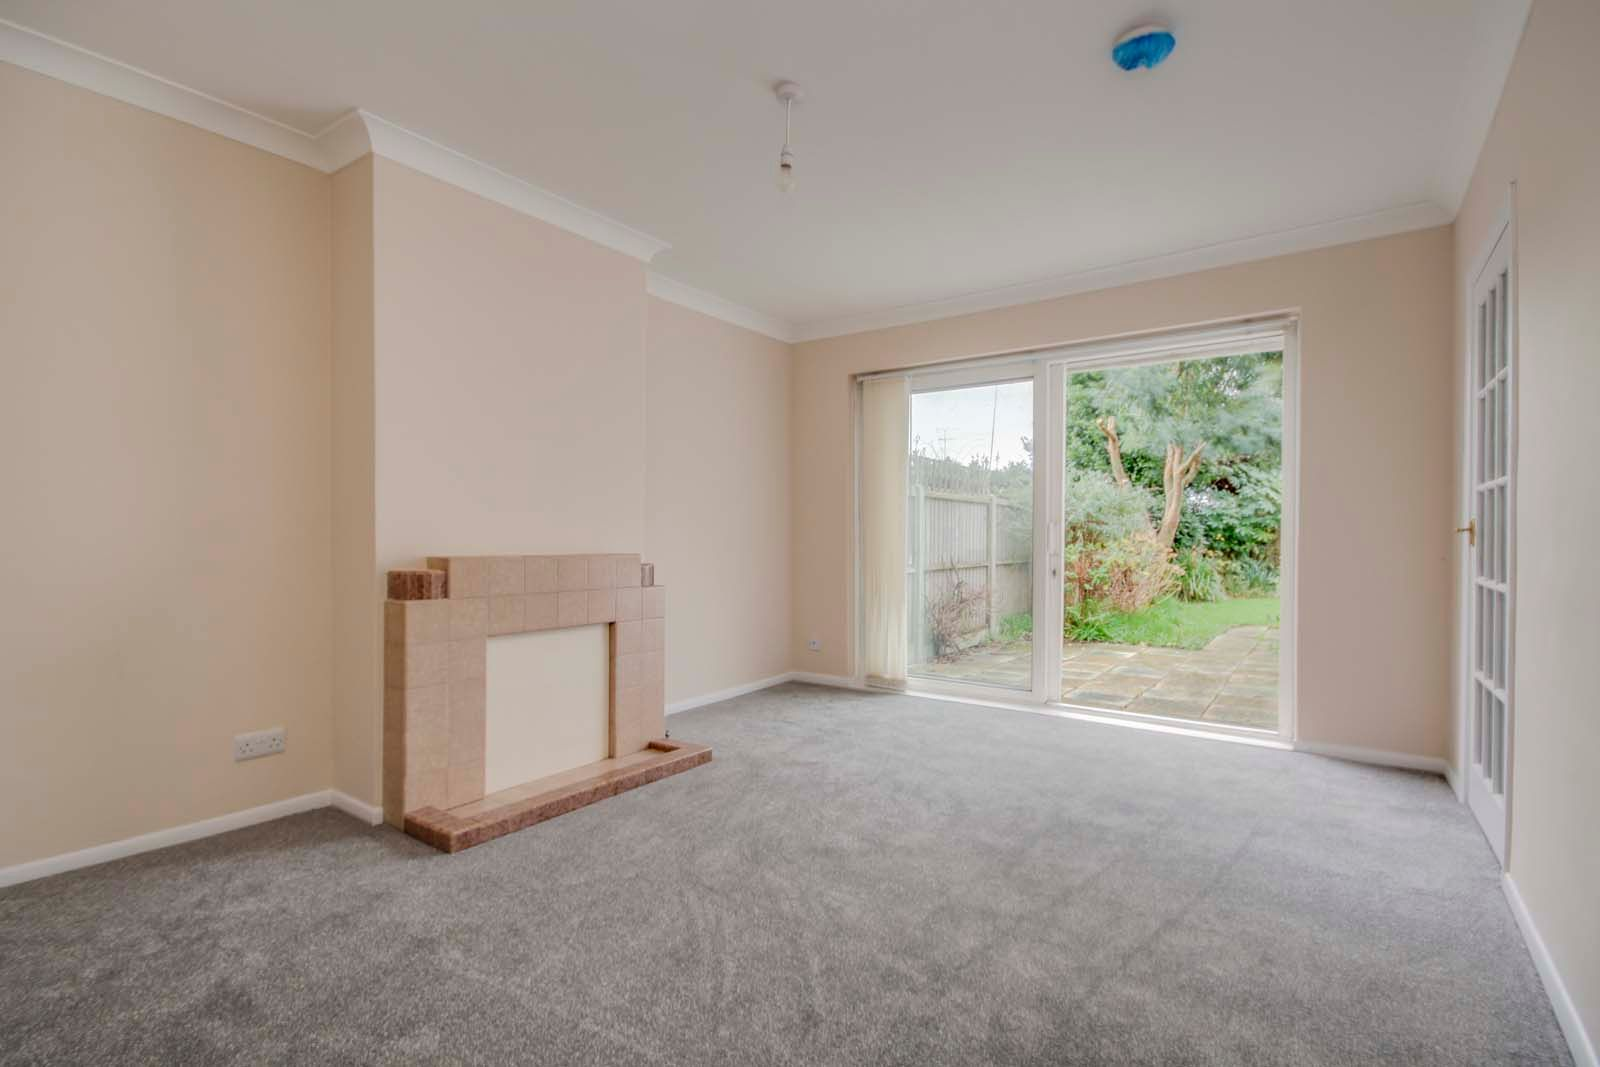 3 bed bungalow for sale in Hillview Crescent COMP MAY 2019  - Property Image 5